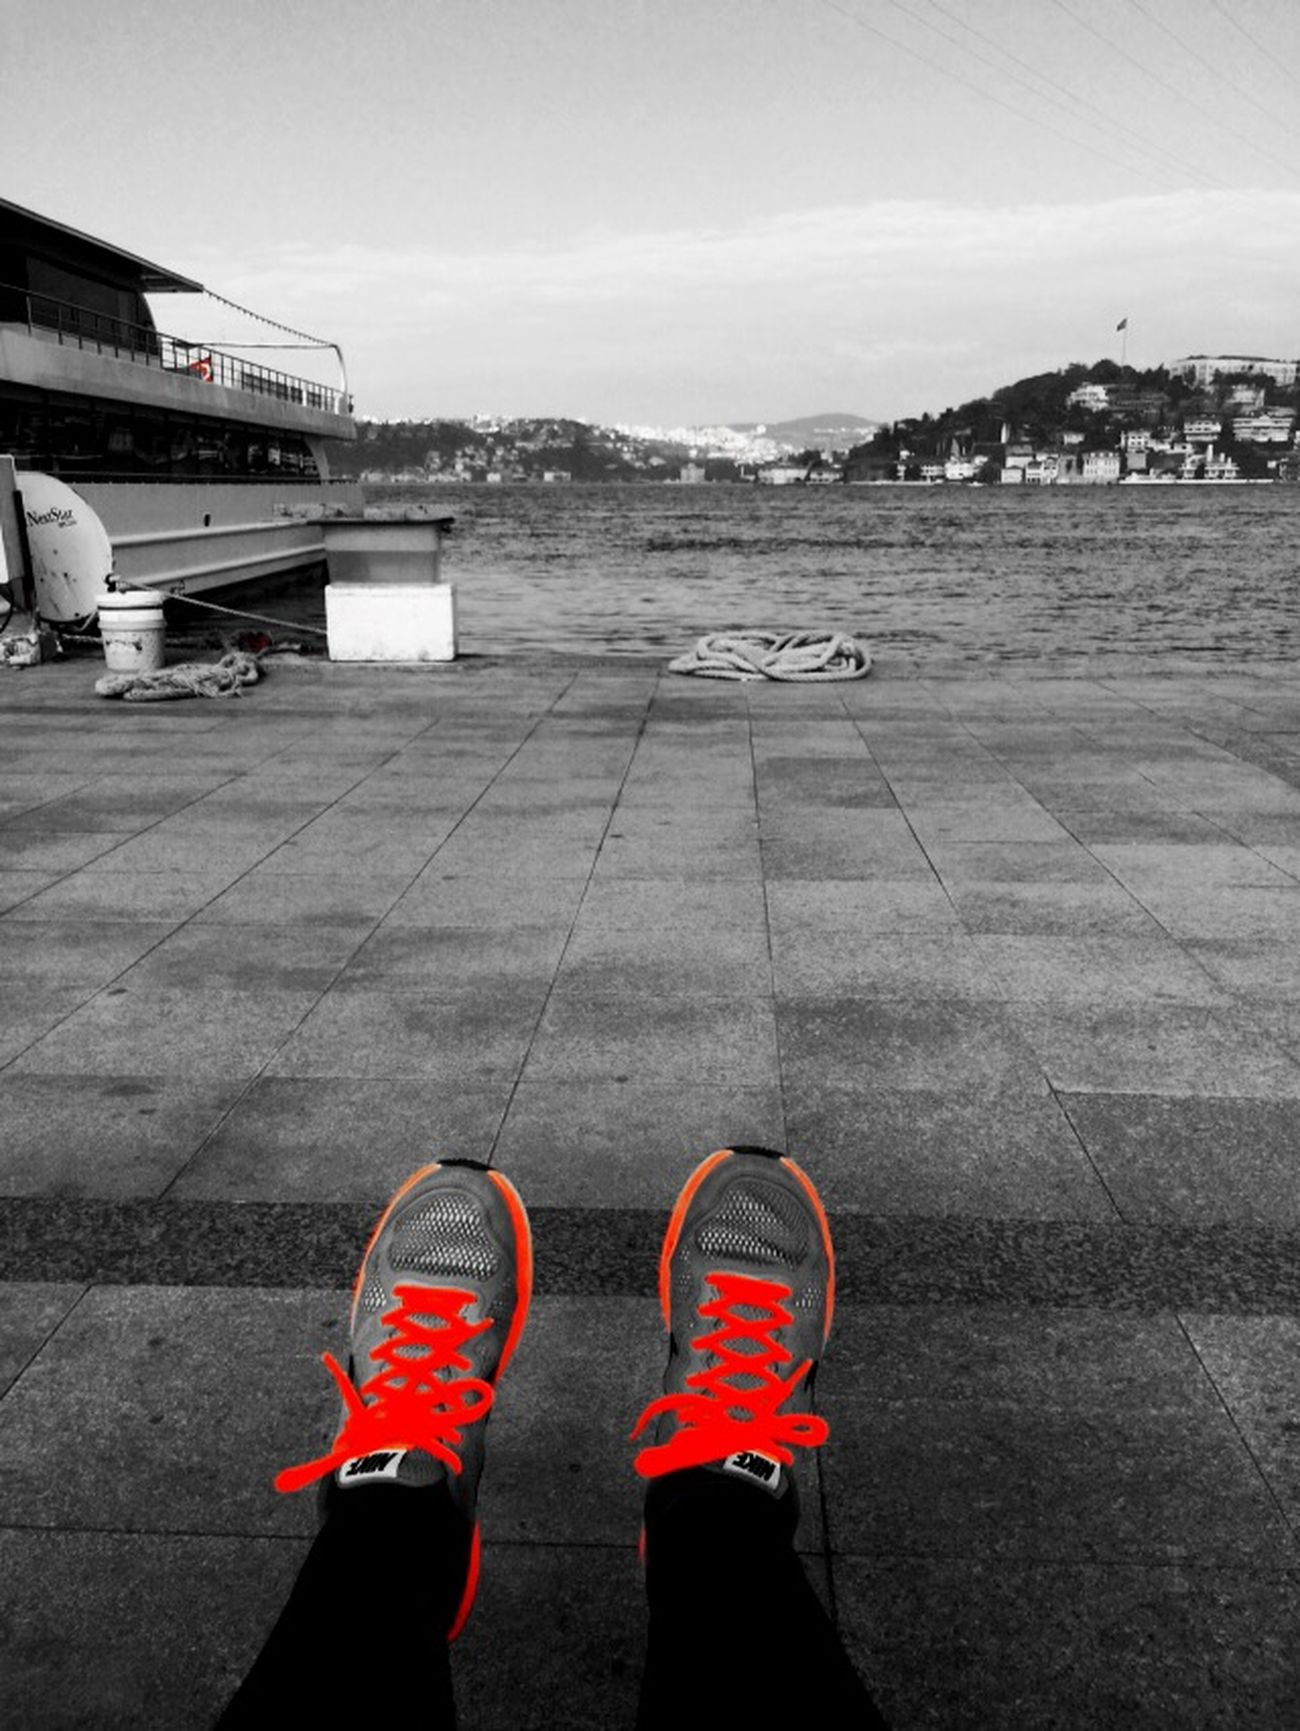 Seaside Nike Likeforlike